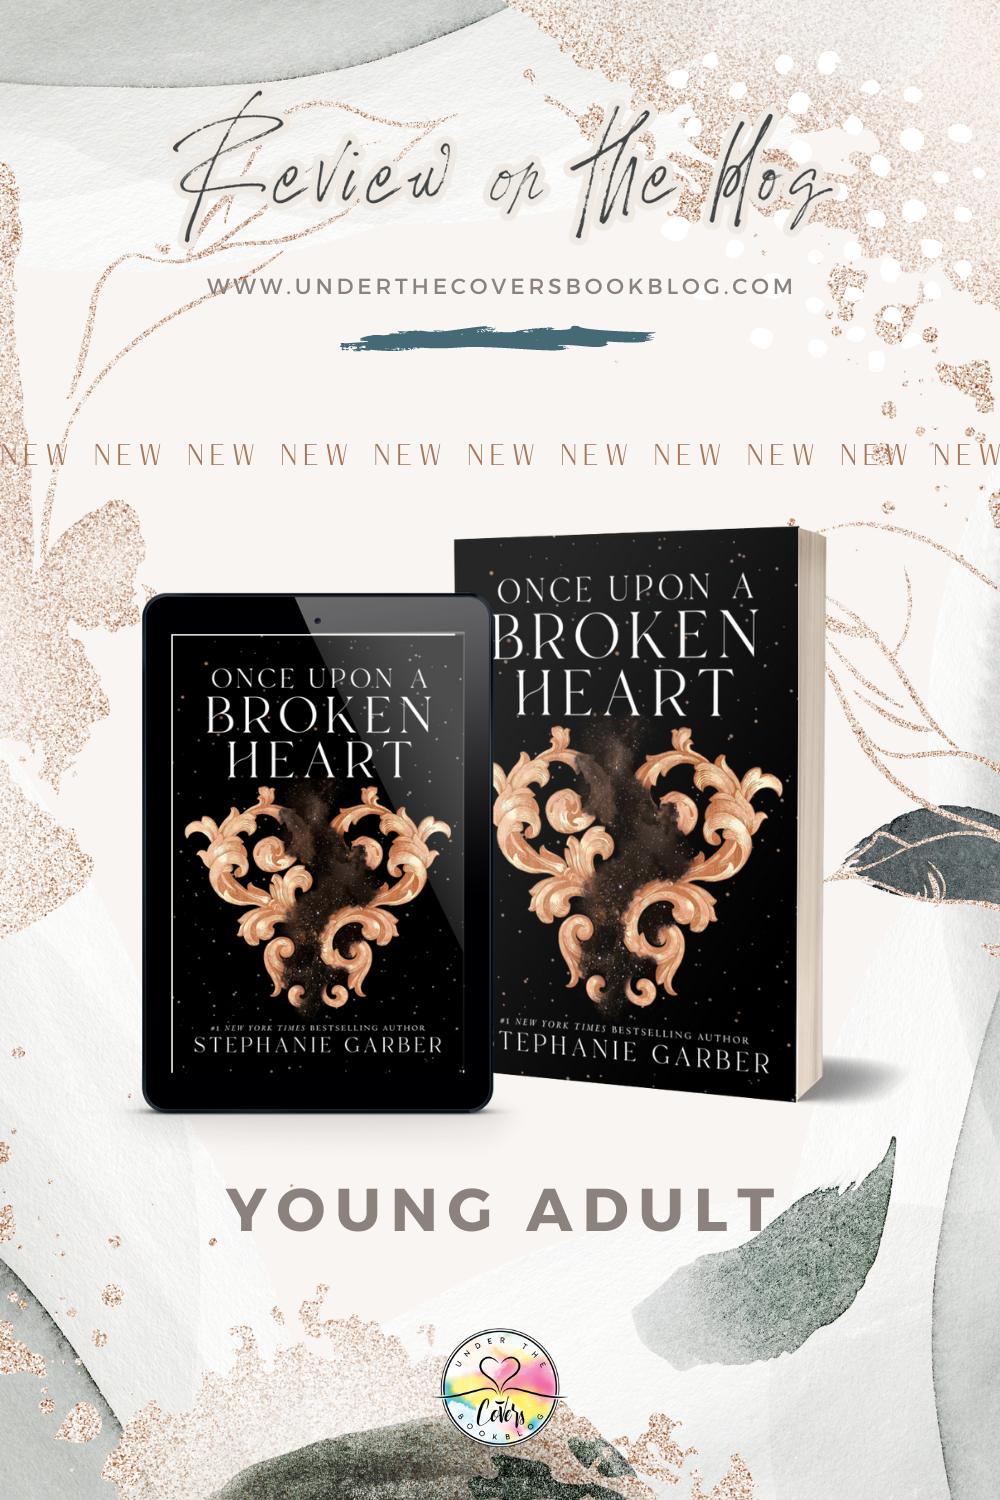 ARC Review: Once Upon a Broken Heart by Stephanie Garber